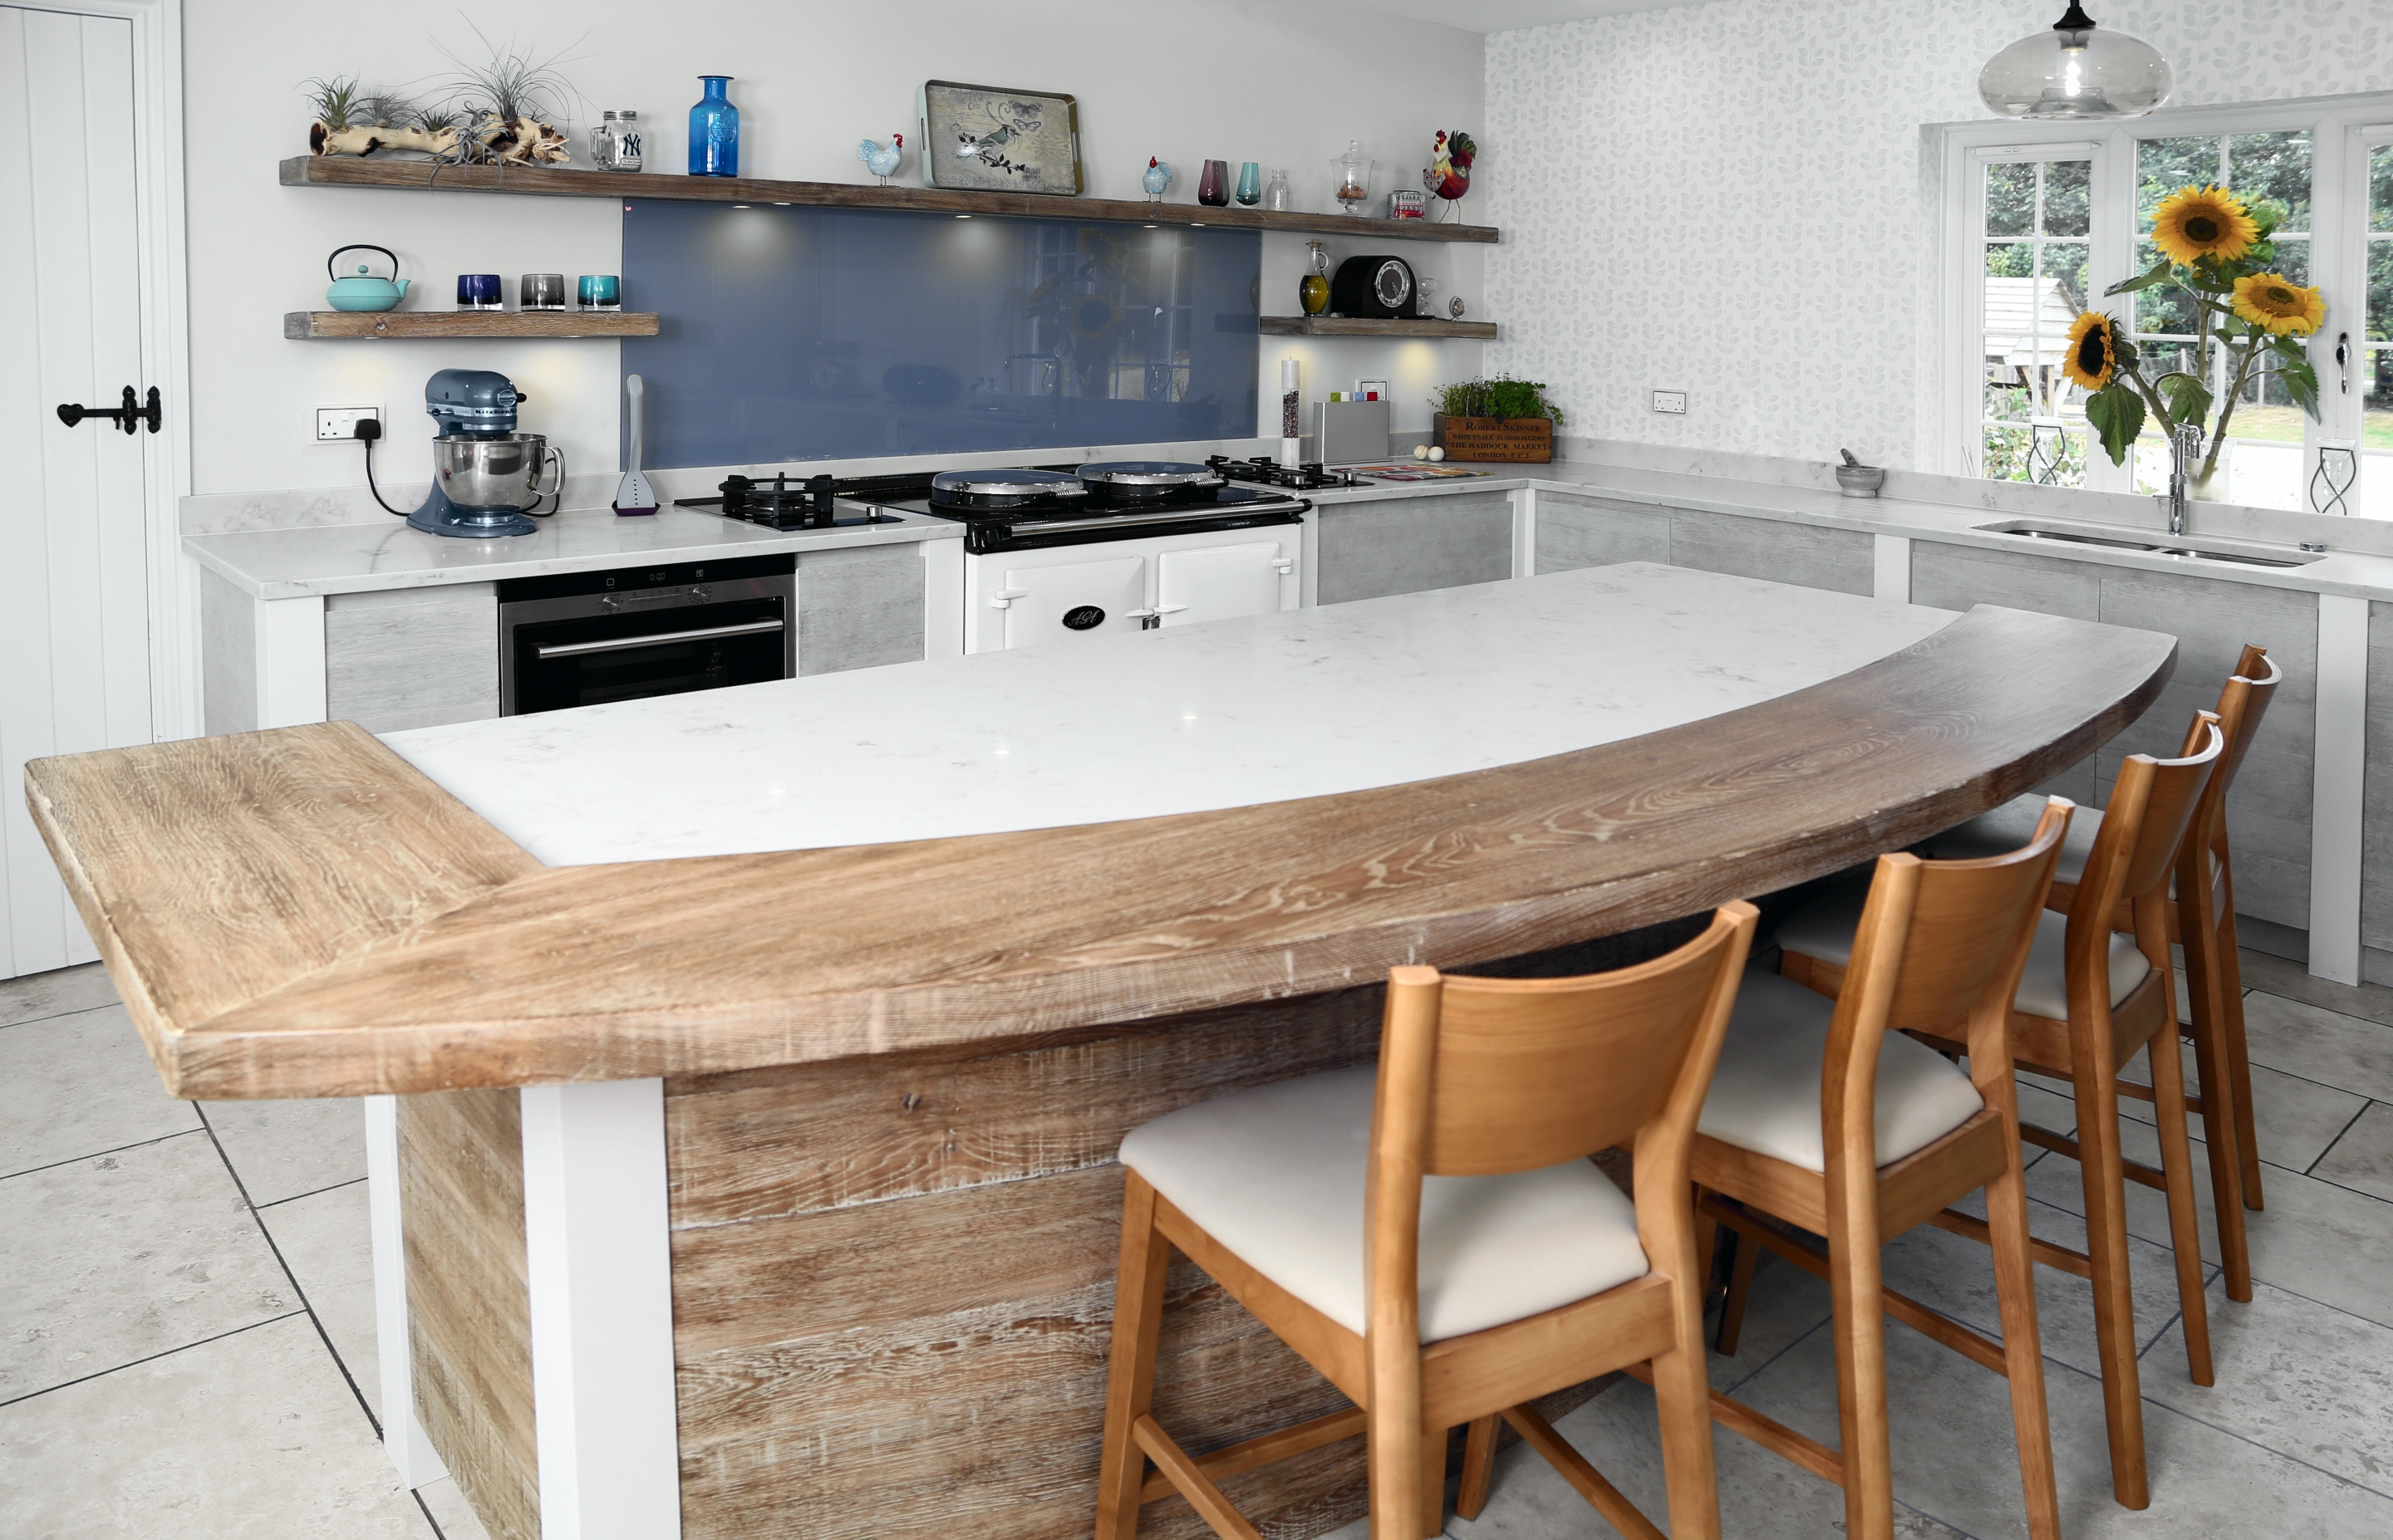 Henderson And Redfearn Unveils The New Handmade Driftwood Kitchen Range The Art Of Design Magazine